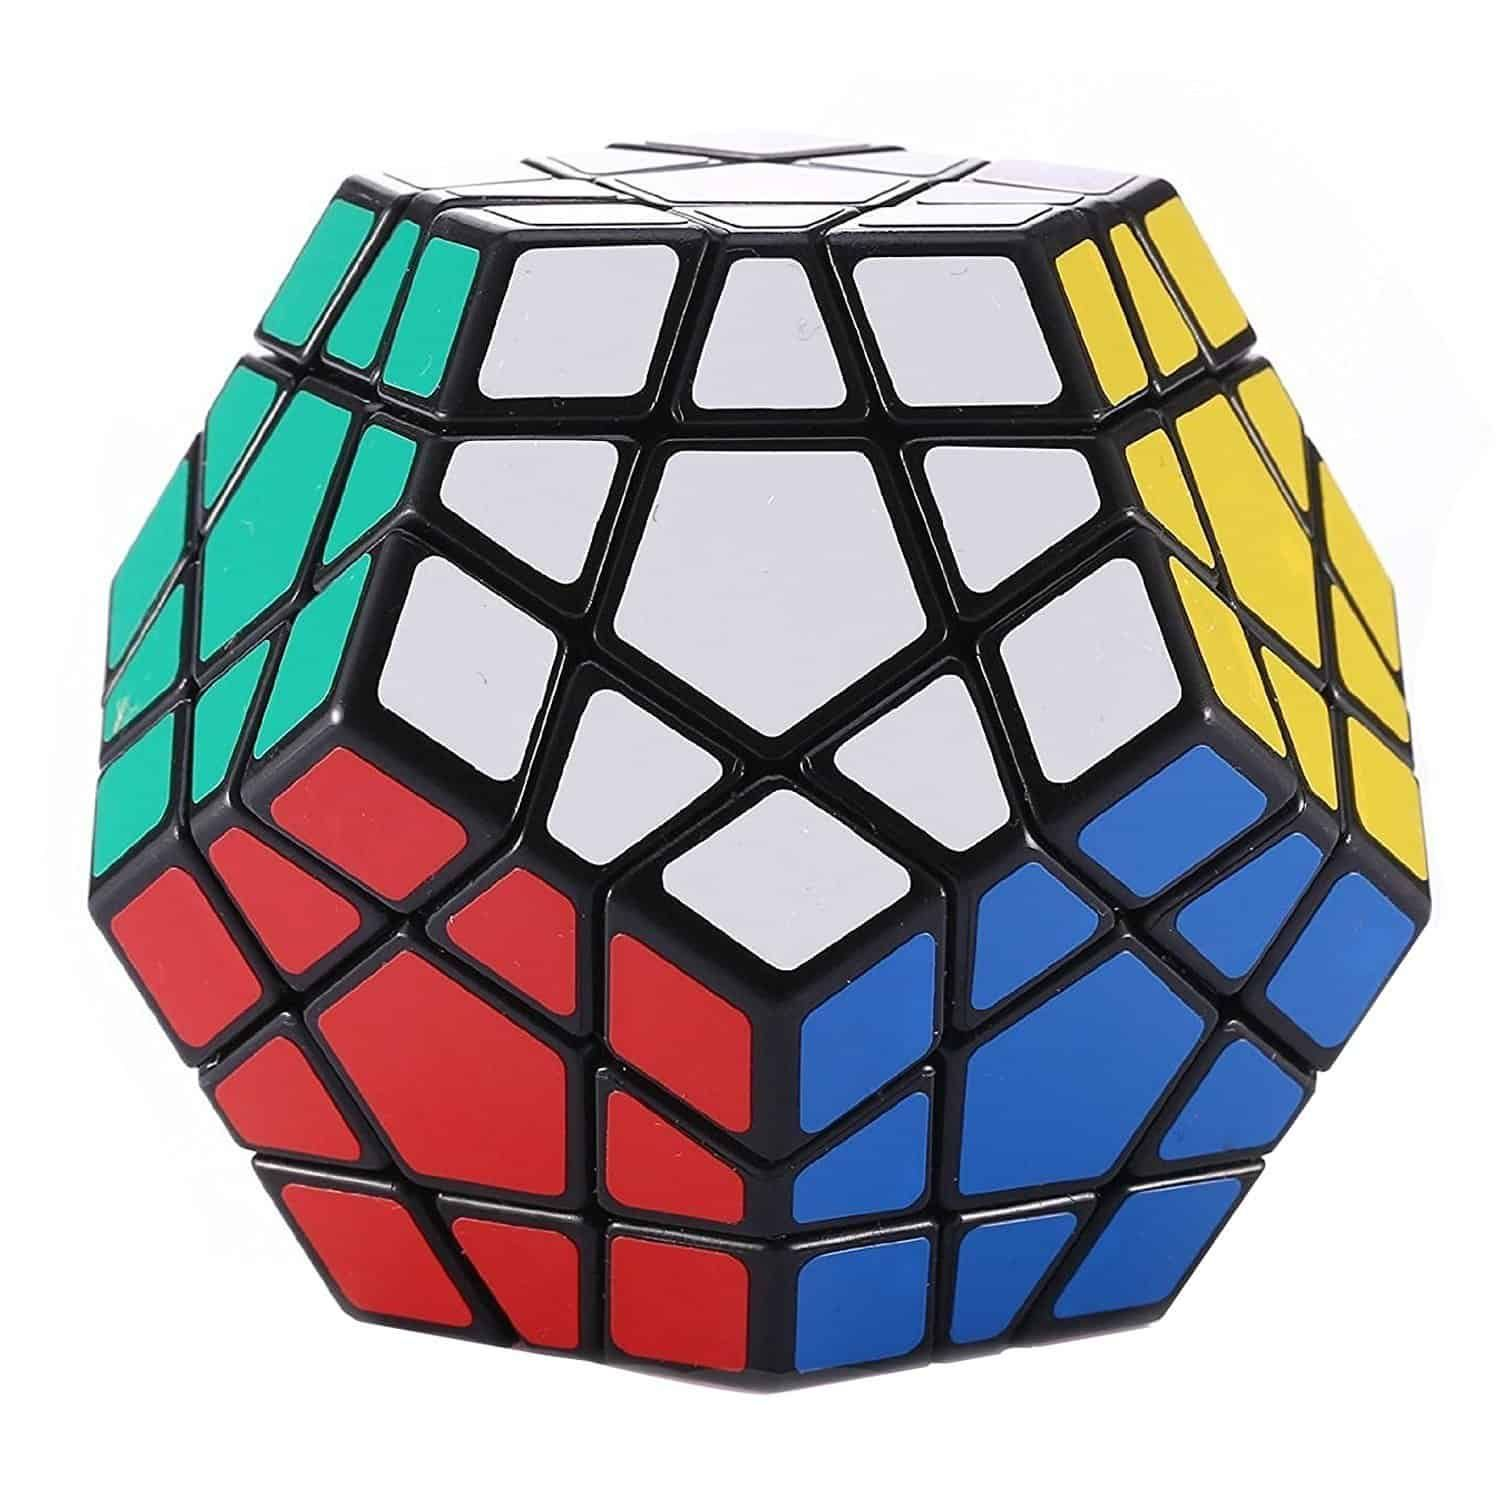 Pot Shaped Cube Puzzle Things I Desire Cube Puzzle Cube Rubiks Cube